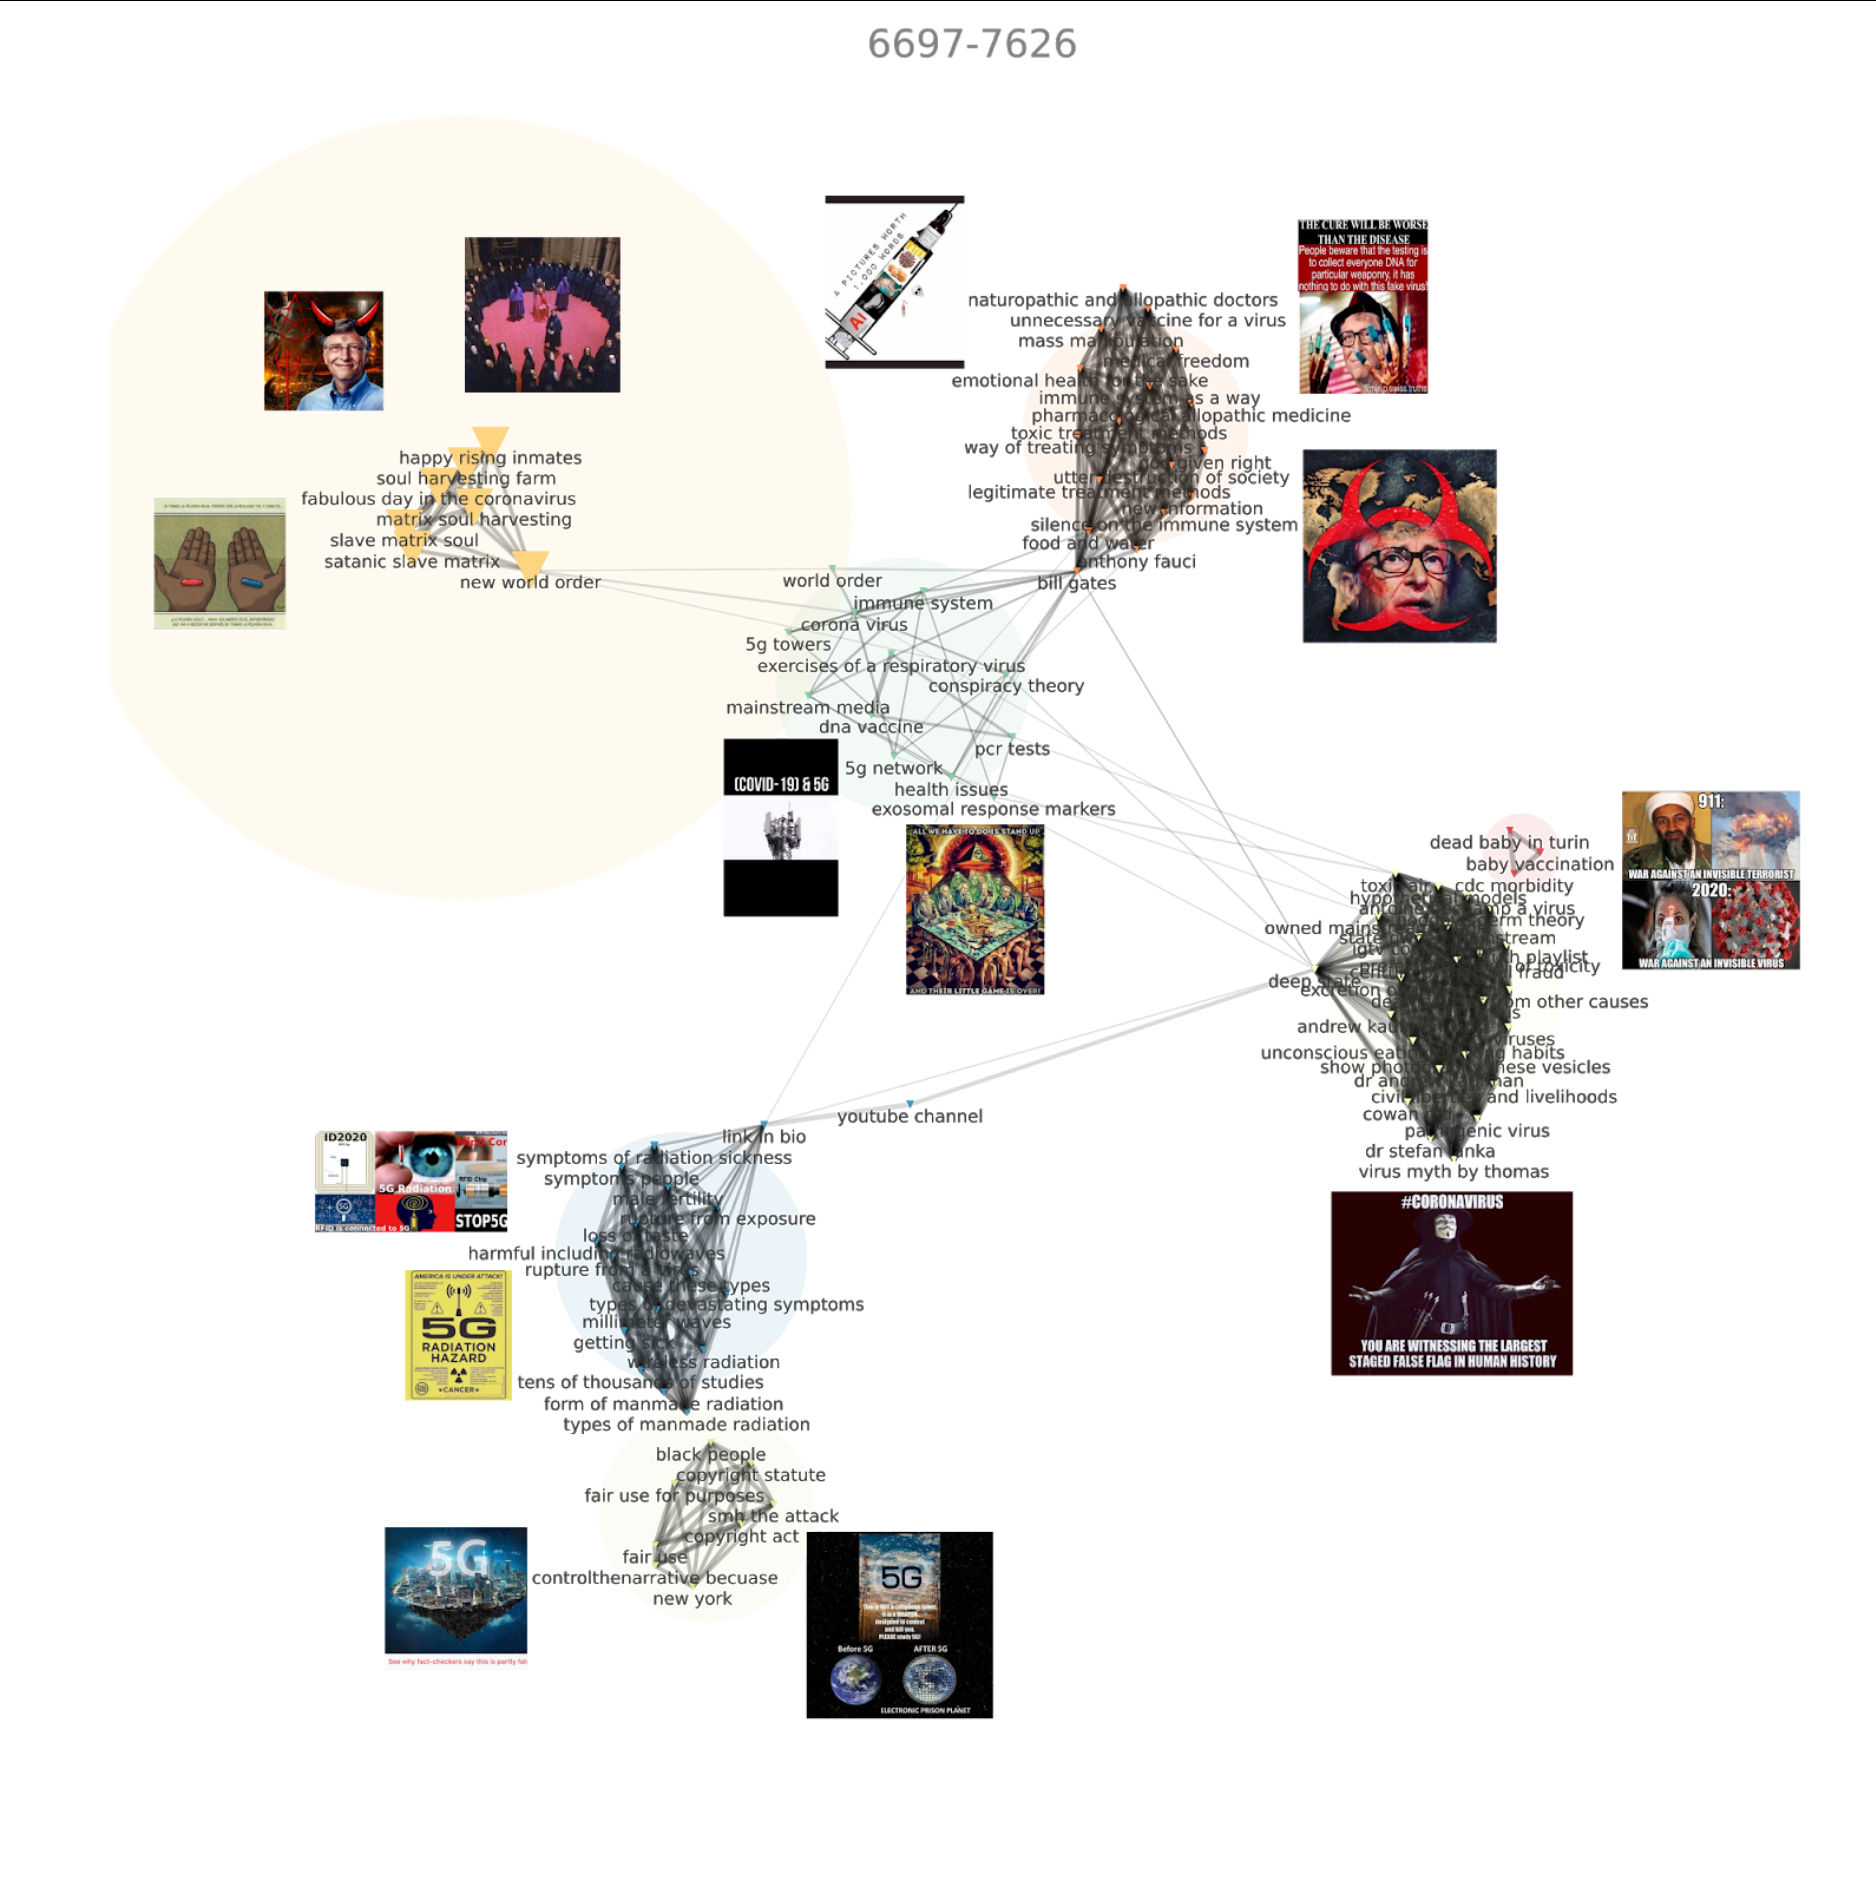 Figure 6: Co-occurences Network of Instagram posts featuring corresponding image imaginary of the users